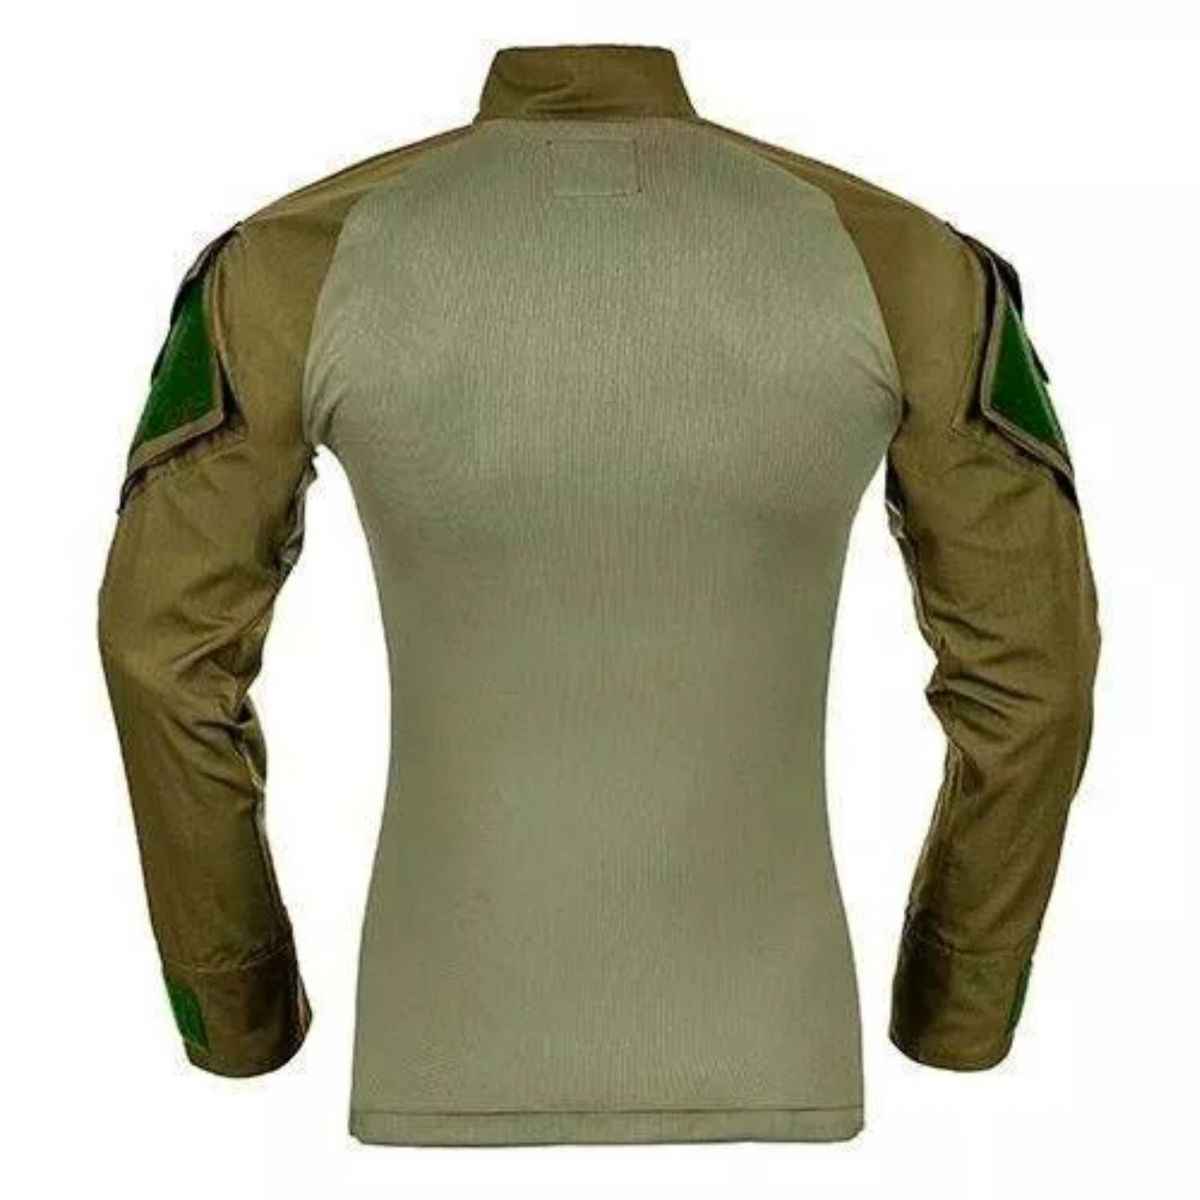 Camisa Raptor tática militar airsoft Paintball  Invictus